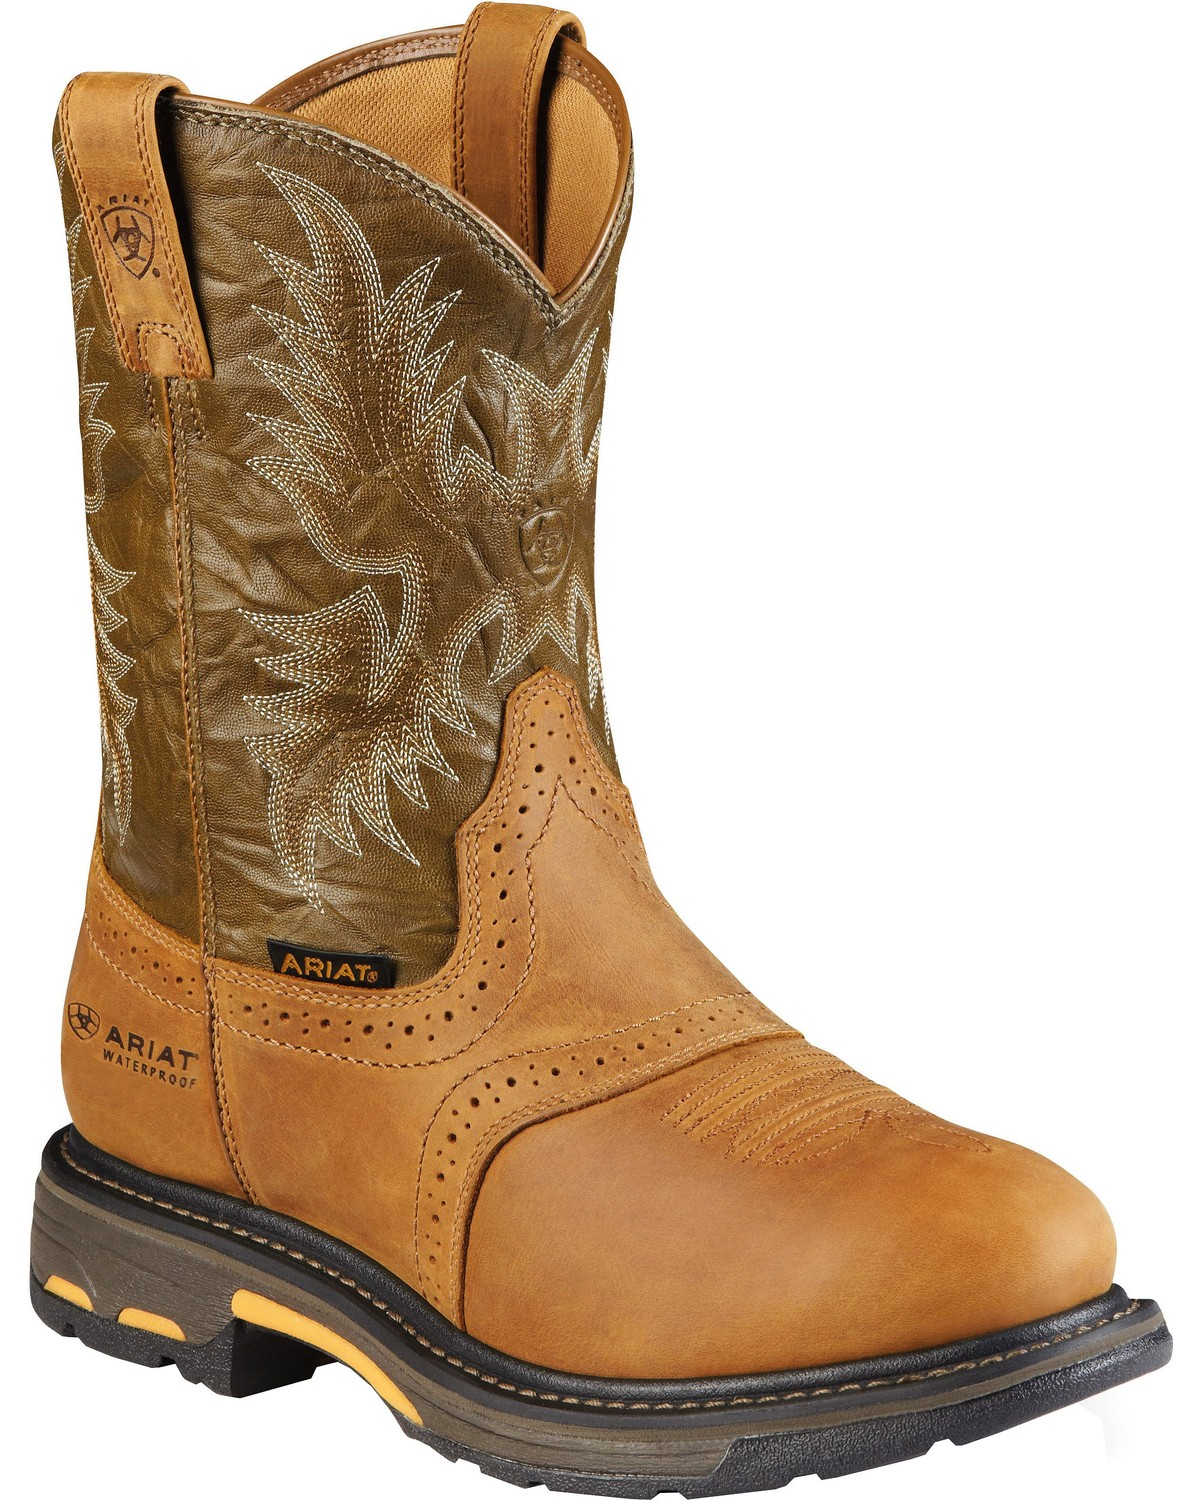 7d2c3a94e863a Zoomed Image Ariat Men's Work-Hog Waterproof Composite Toe Work Boots, Aged  Bark, hi-